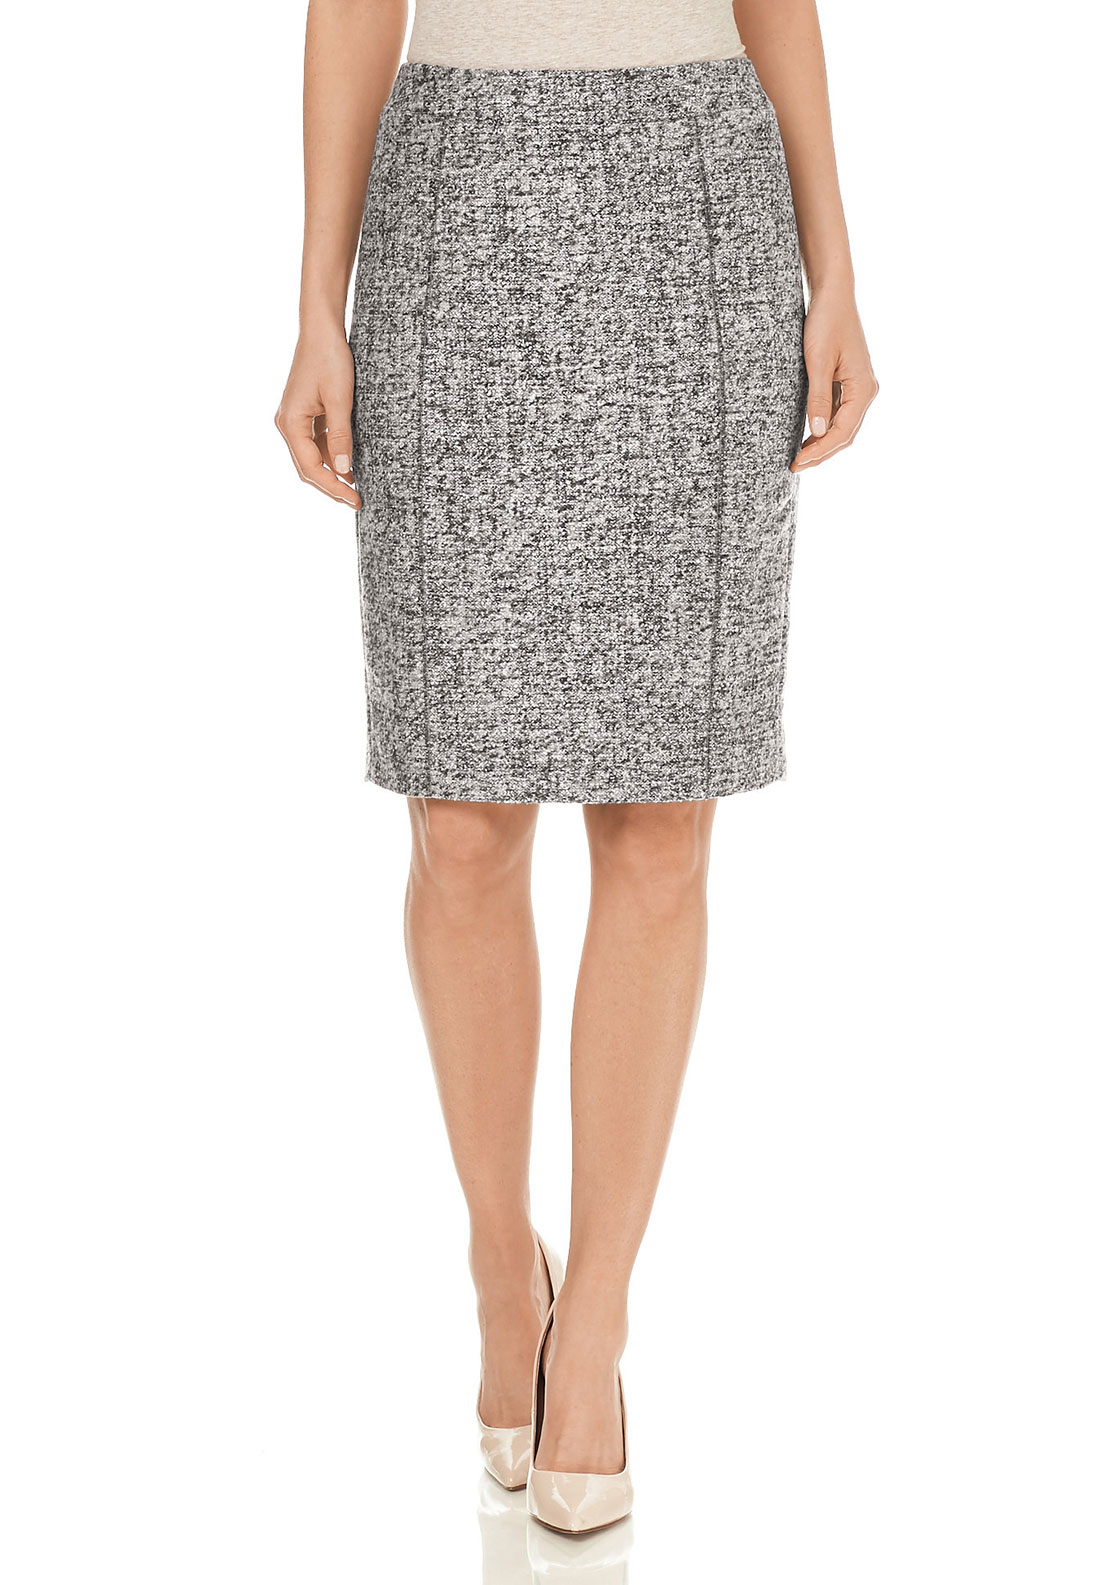 Gerry Weber Wool Blend Pencil Skirt, Grey